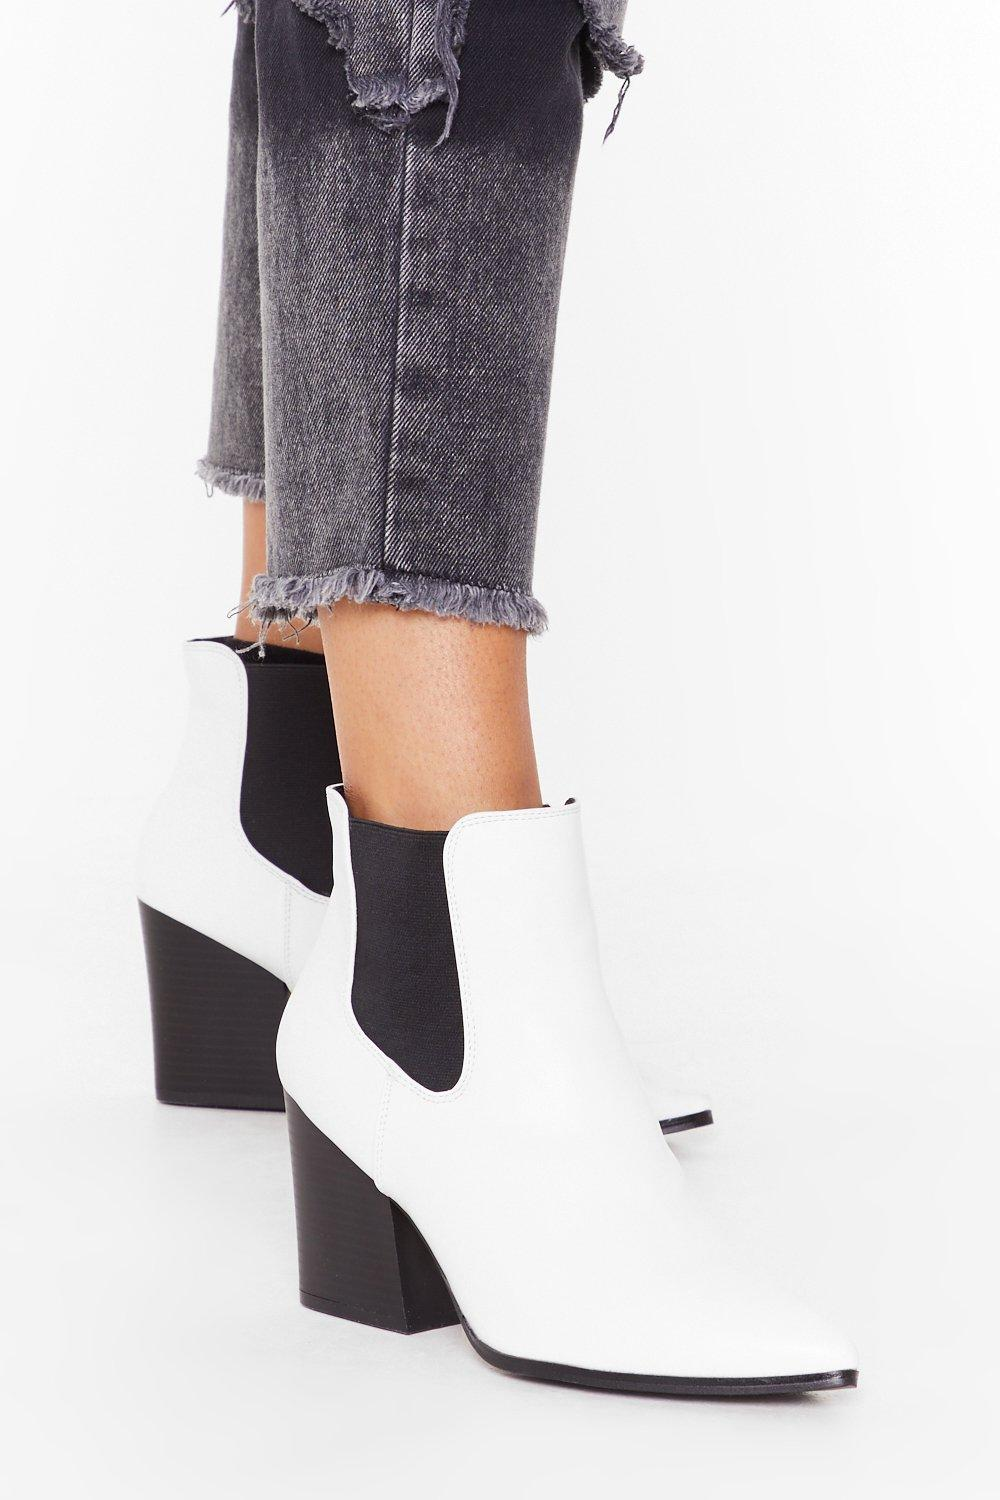 Image of Faux leather heeled chelsea boots